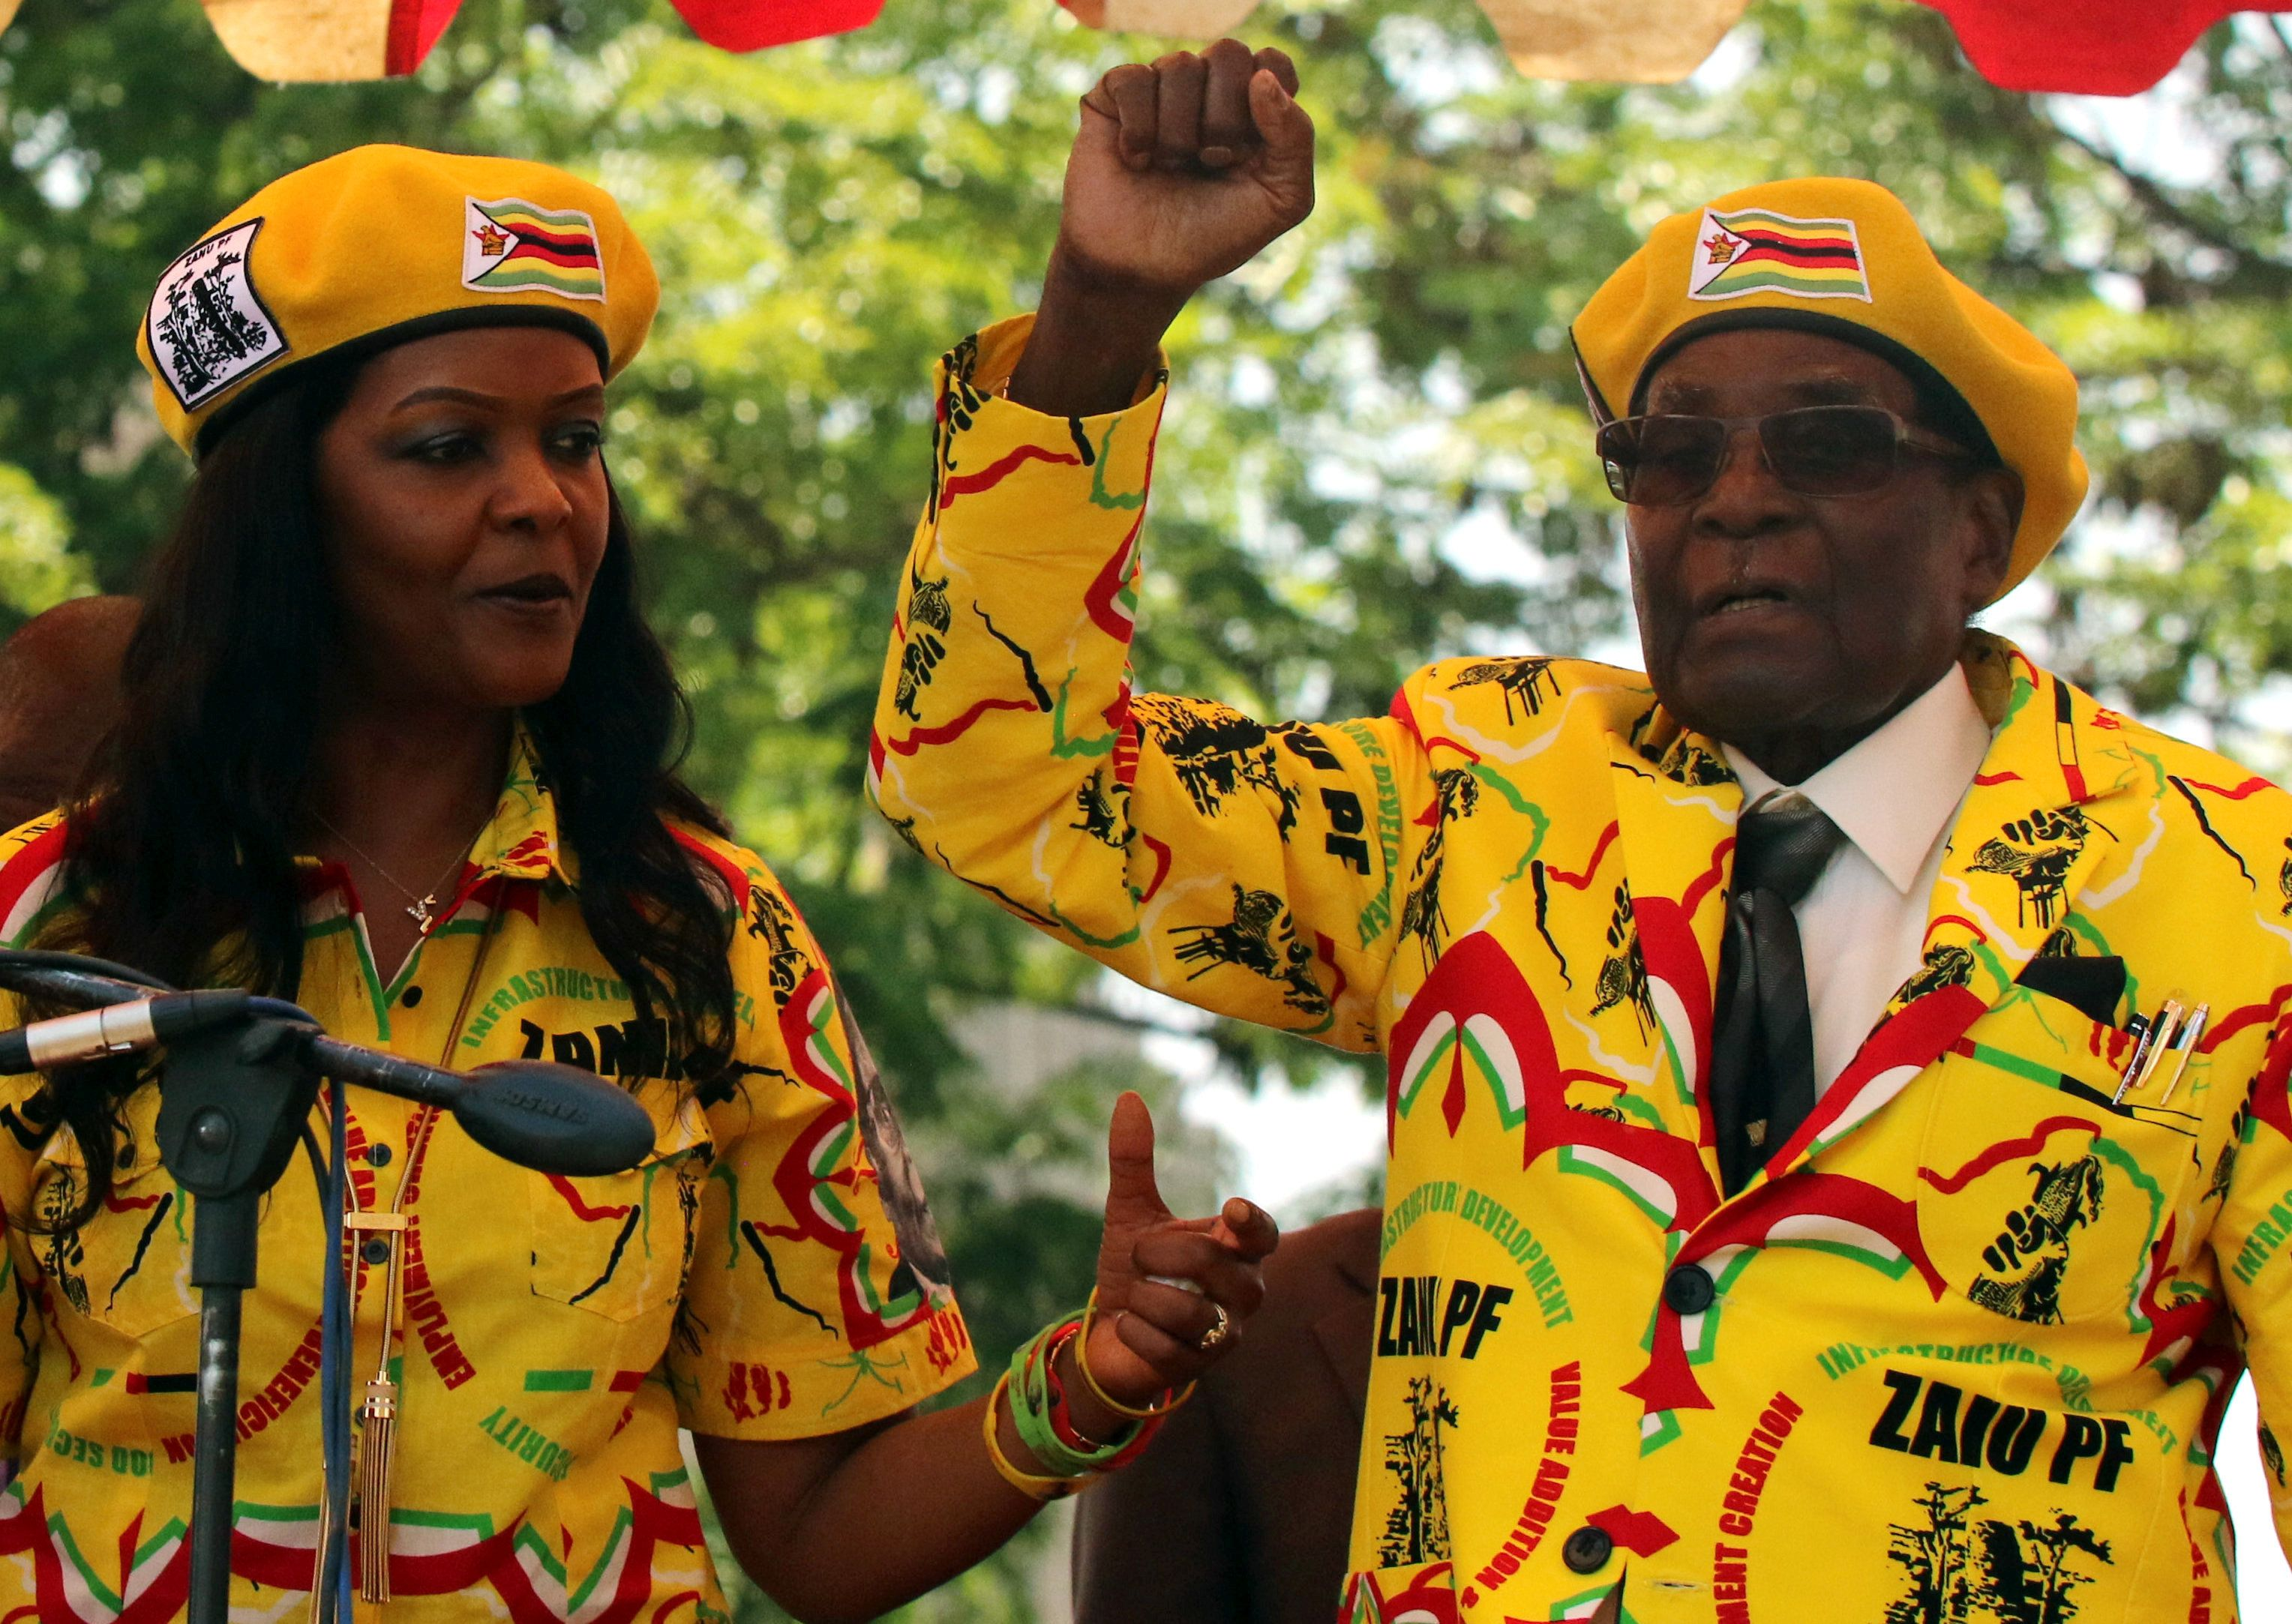 President Robert Mugabe and his wife Grace Mugabe attend a rally of his ruling ZANU-PF party in Harare, Zimbabwe, November 8, 2017.REUTERS/Philimon Bulawayo